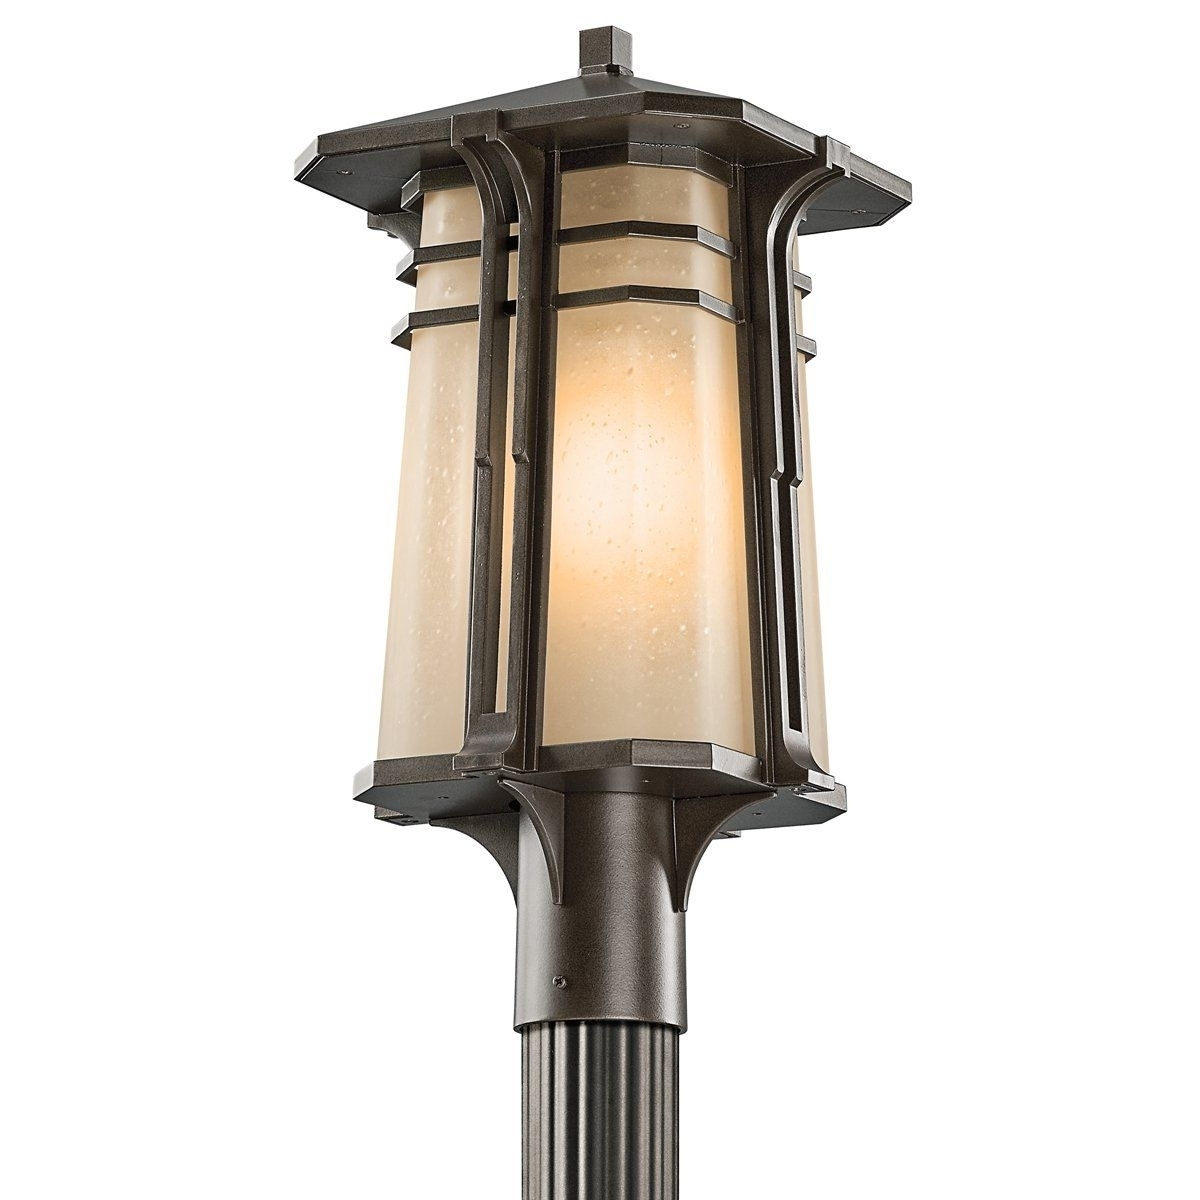 Kichler Lighting 49178oz North Creek 20 Inch High Light Outdoor Post For Preferred Kichler Outdoor Lanterns (Gallery 20 of 20)